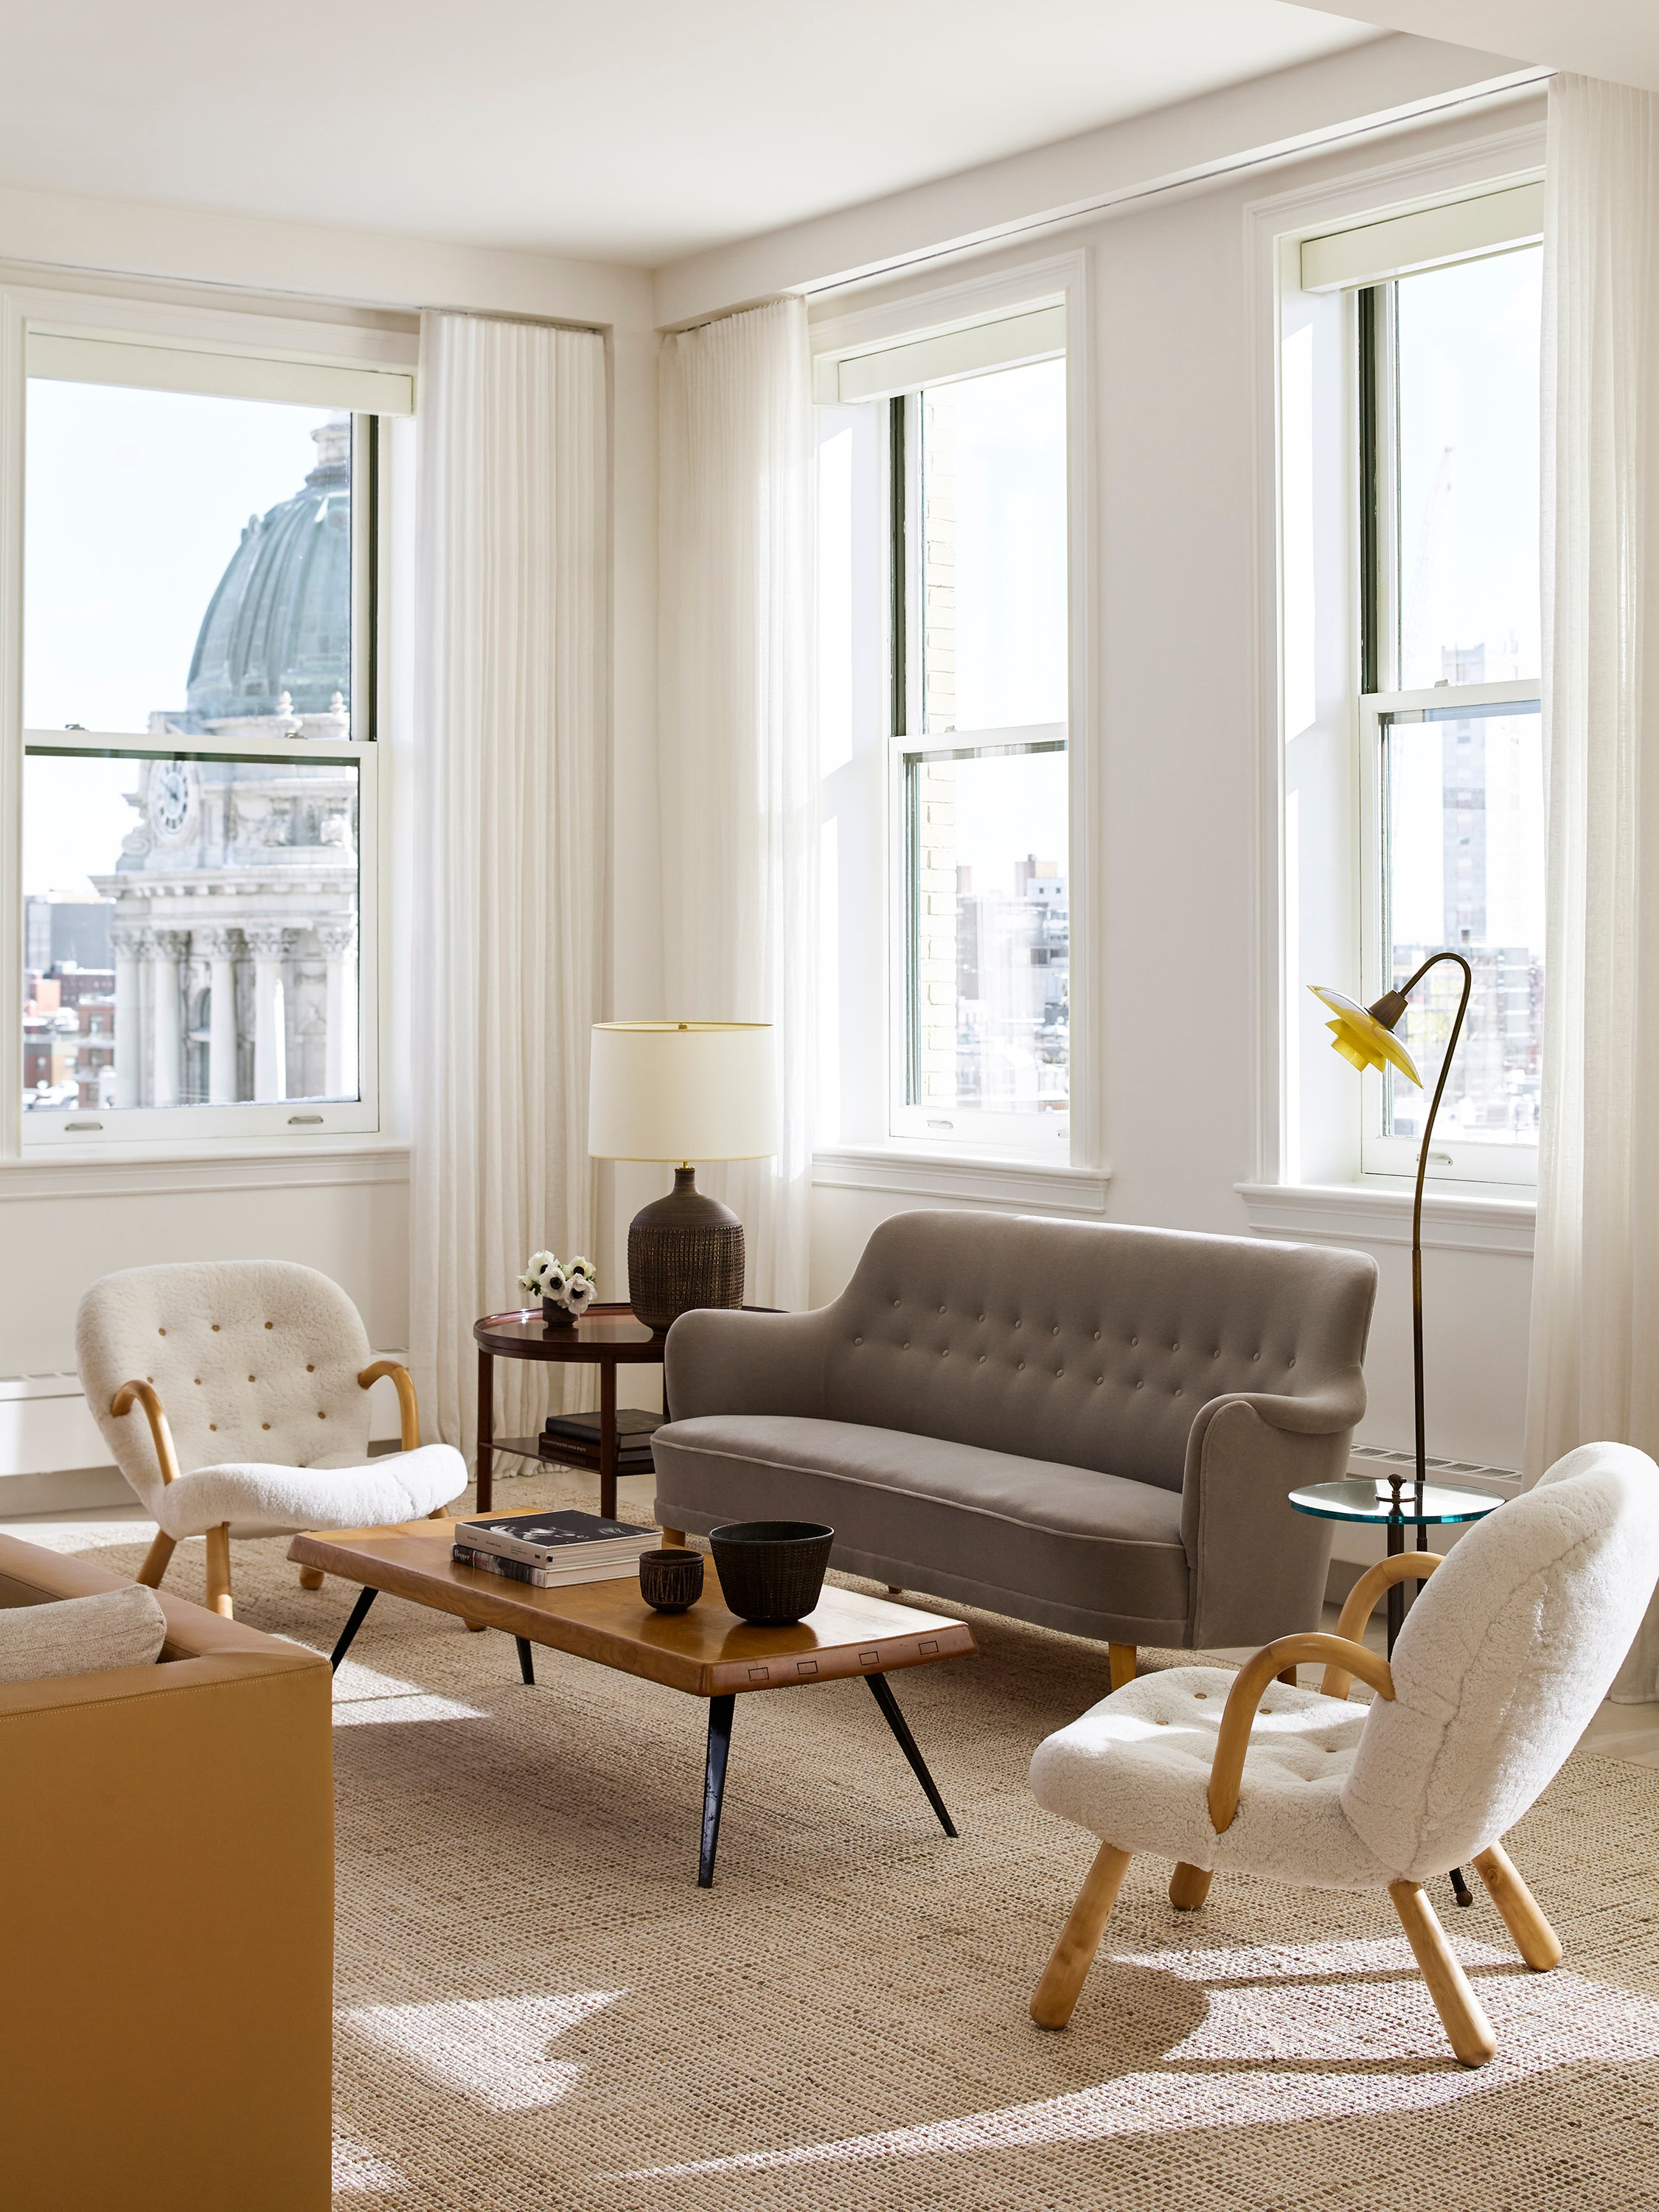 Living Room in New York, NY by Neal Beckstedt Studio